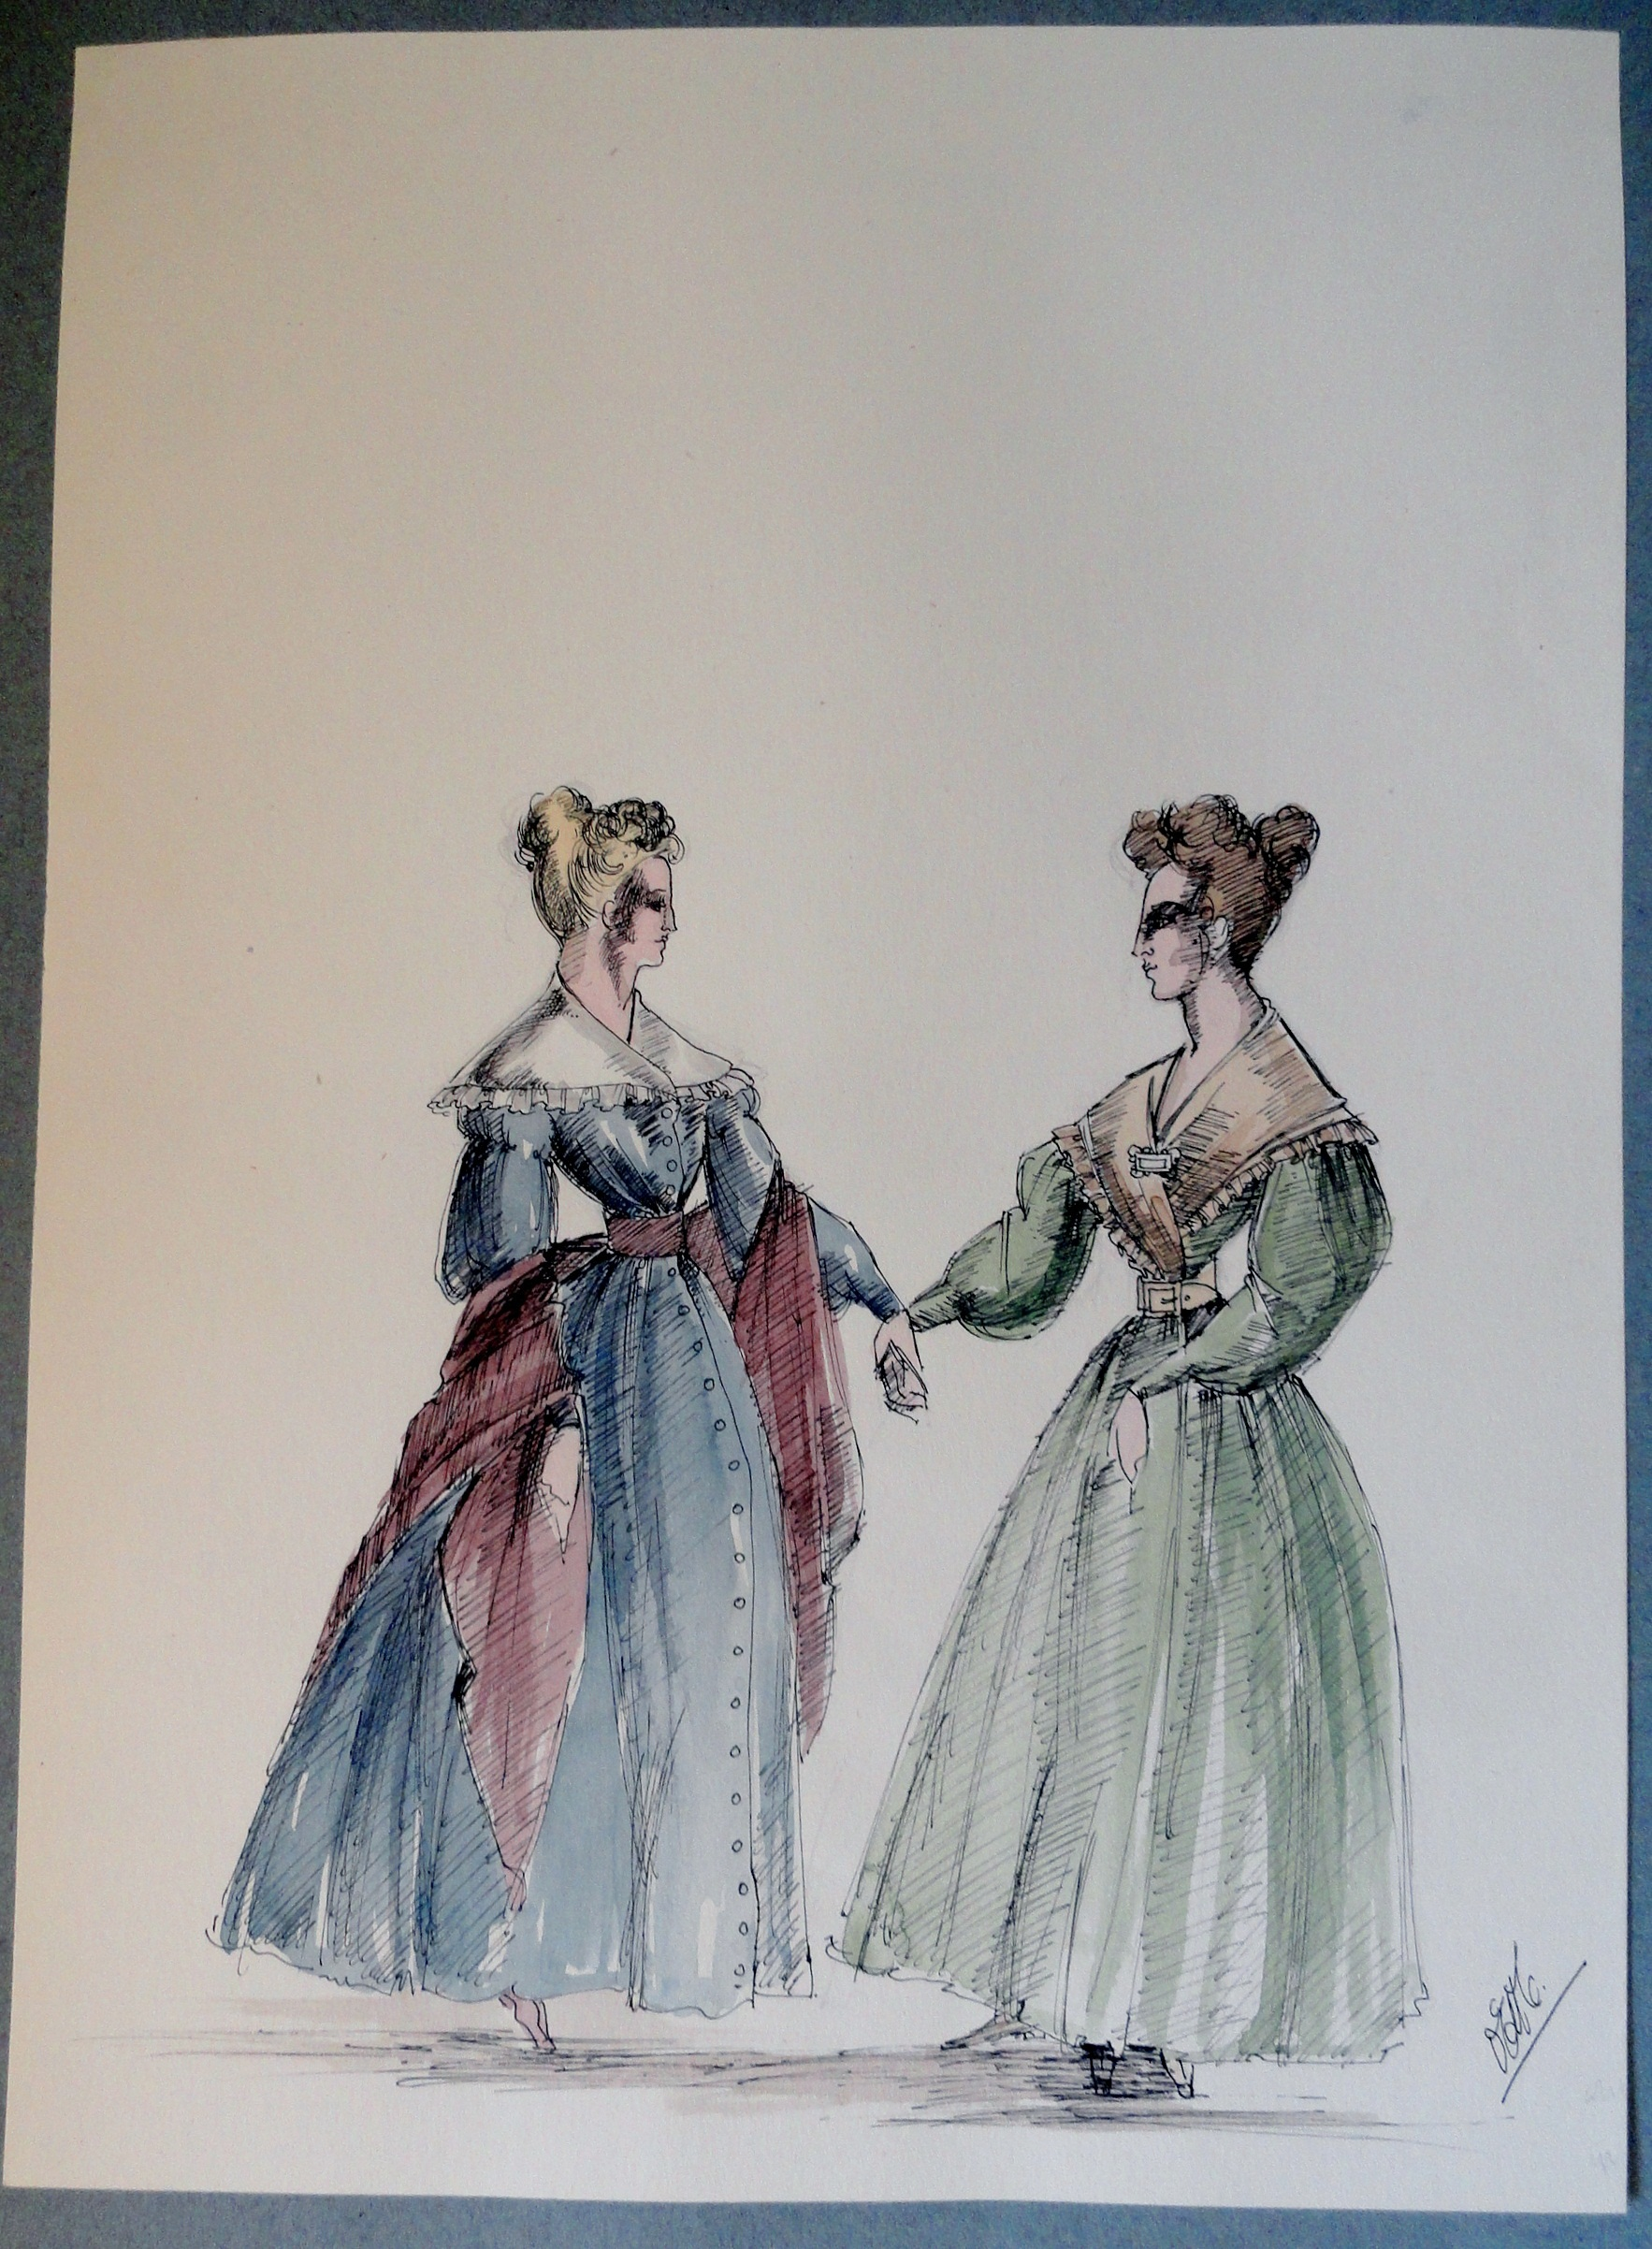 Rachel and sister in blue and green dresses. Pen and Ink and Watercolor. From the Rachel Portfolio by Owen Hyde Clark. $150.00.